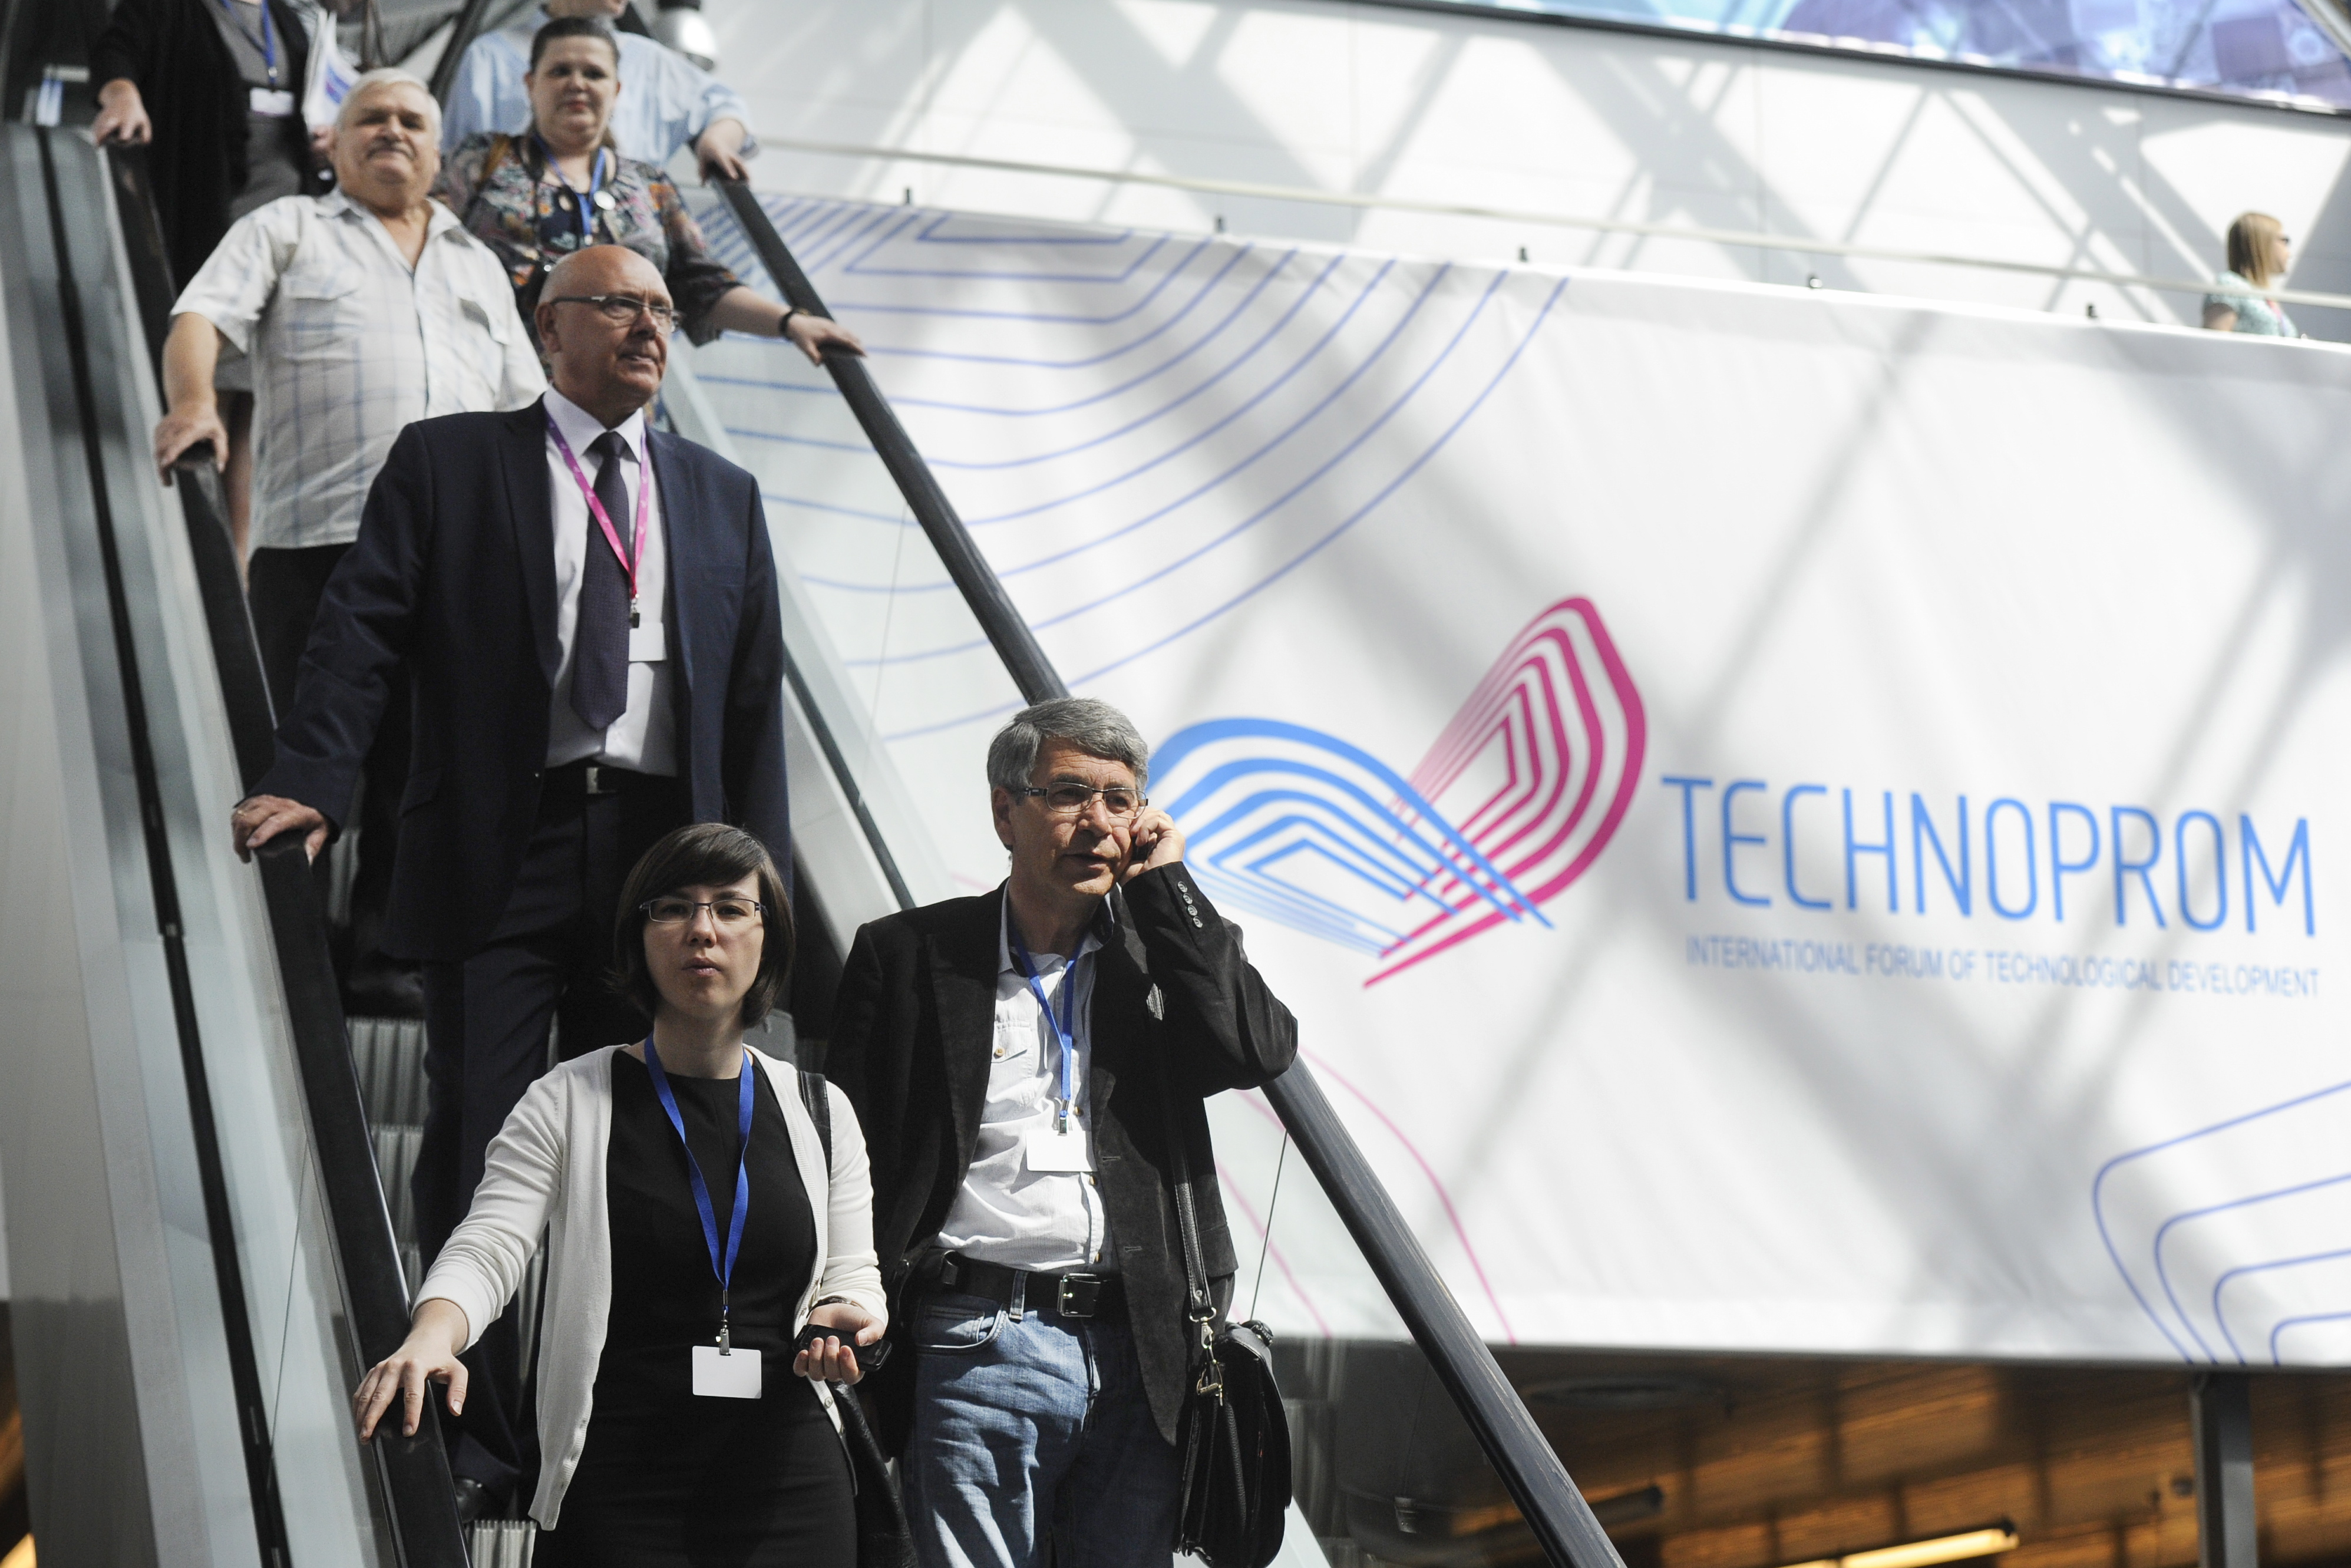 Visitors at the 4th Technoprom International Forum of Technological Development. Source: Kirill Kukhmar/TASS